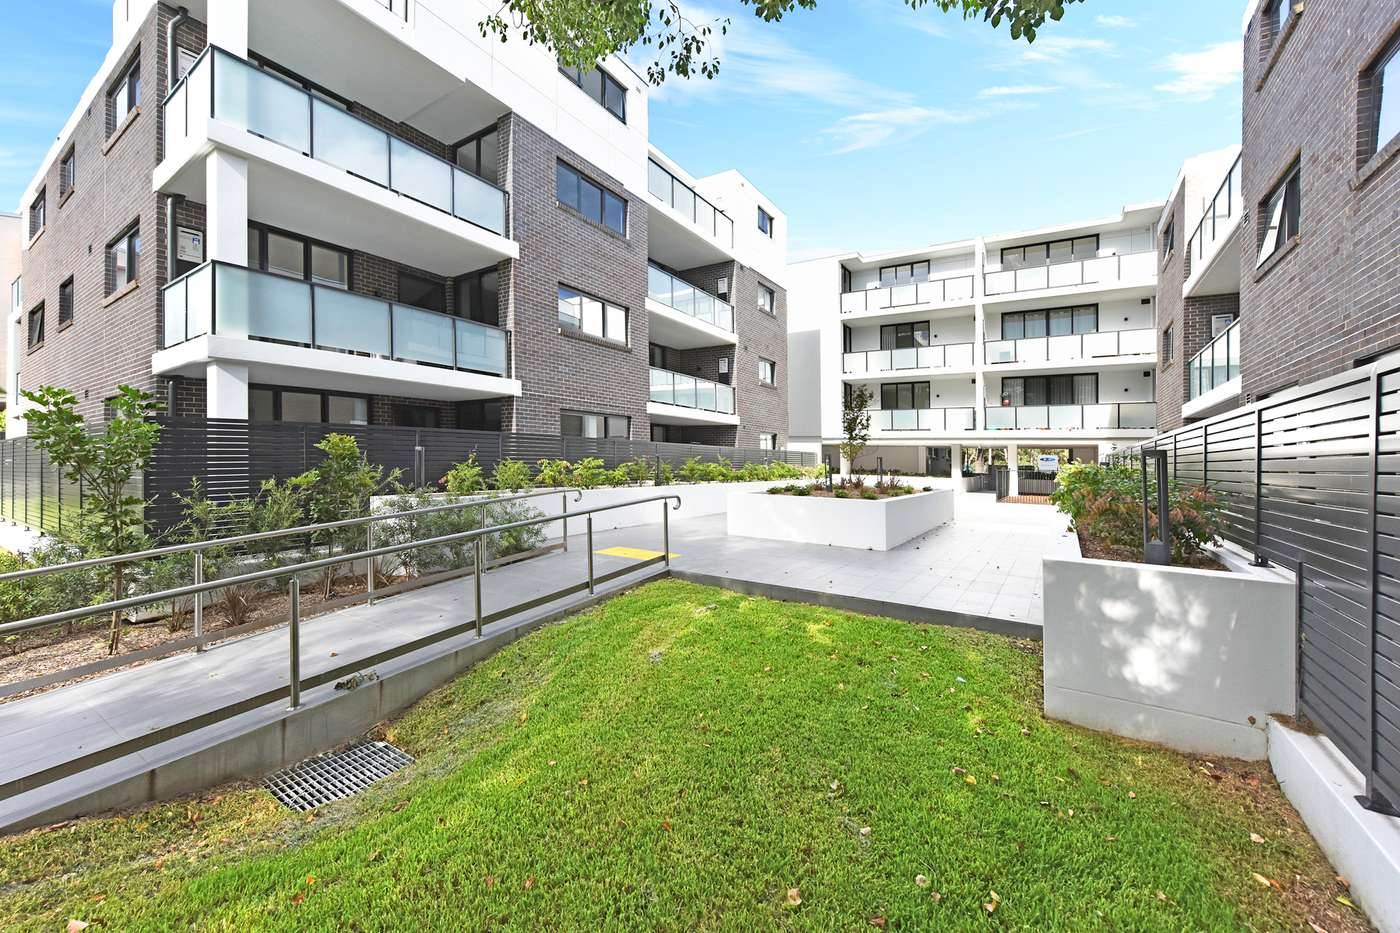 Main view of Homely apartment listing, 56/77-87 Fifth Avenue, Campsie, NSW 2194